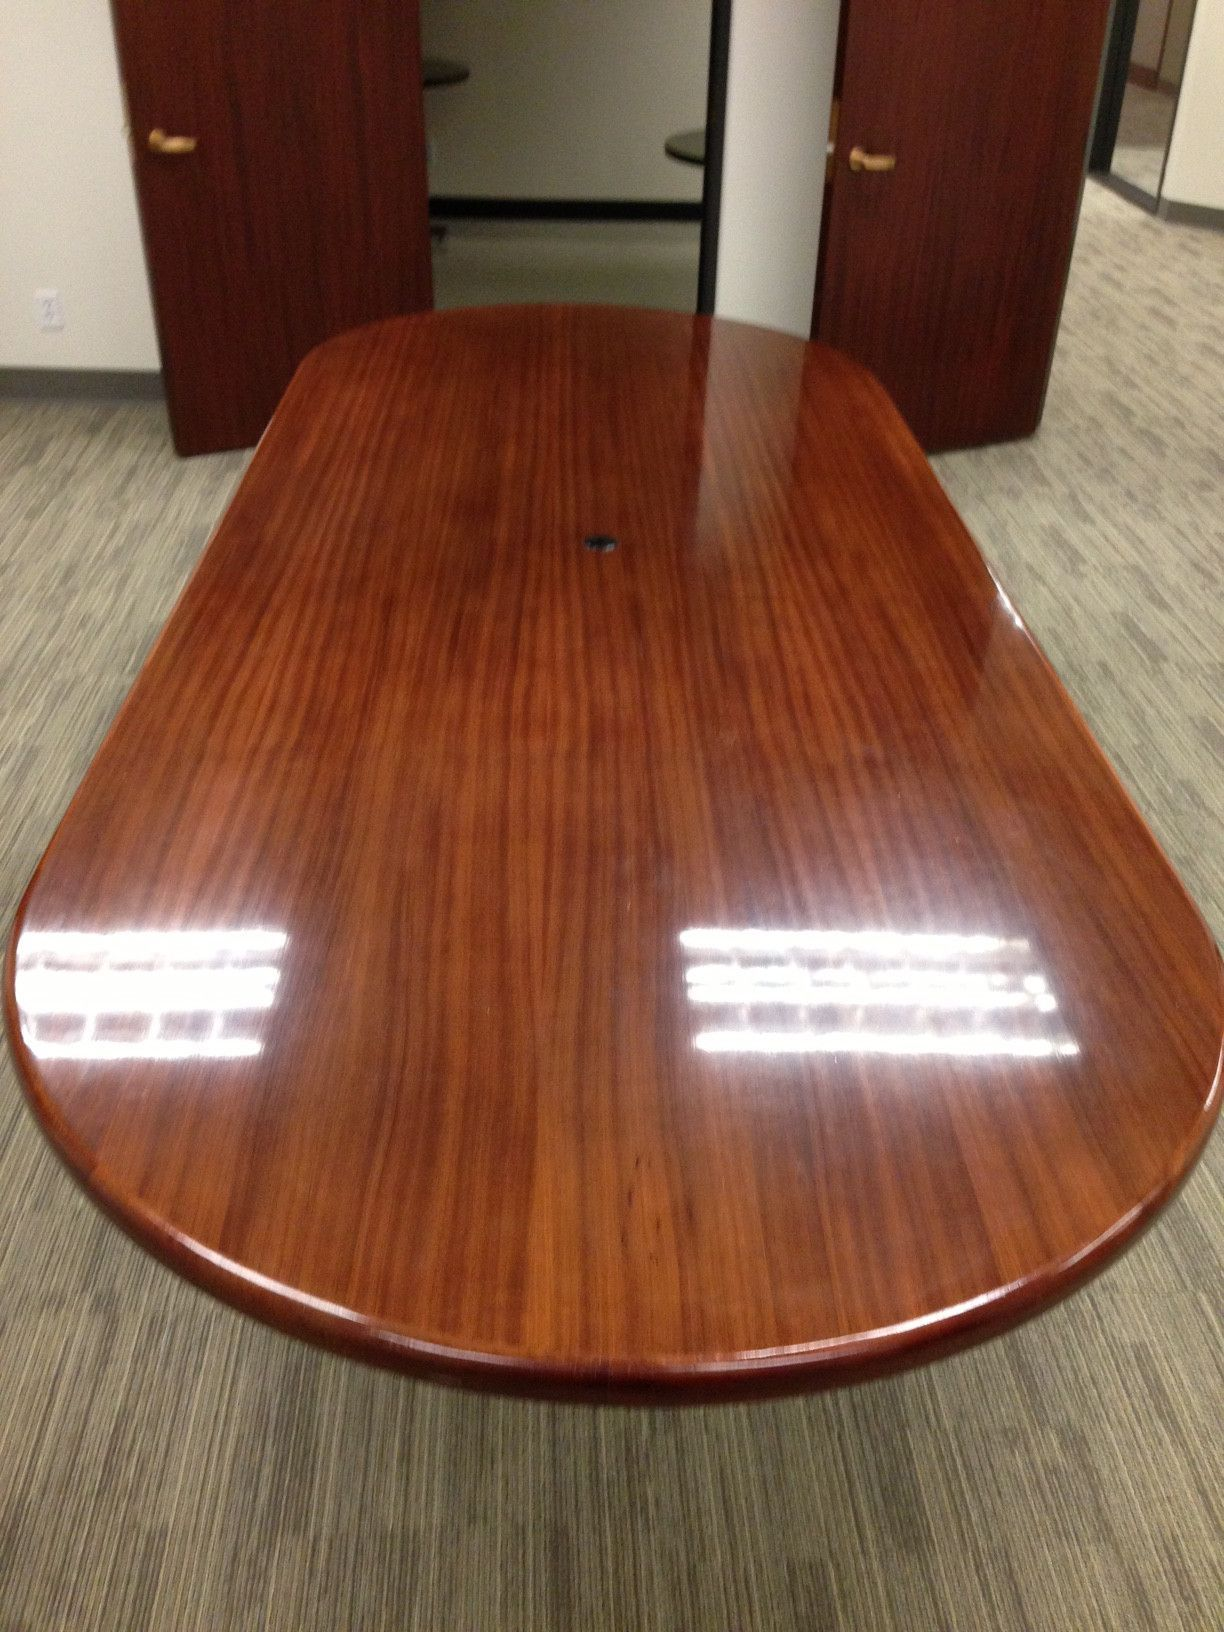 X CONFERENCE TABLE Products Pinterest Products - 10 x 4 conference table